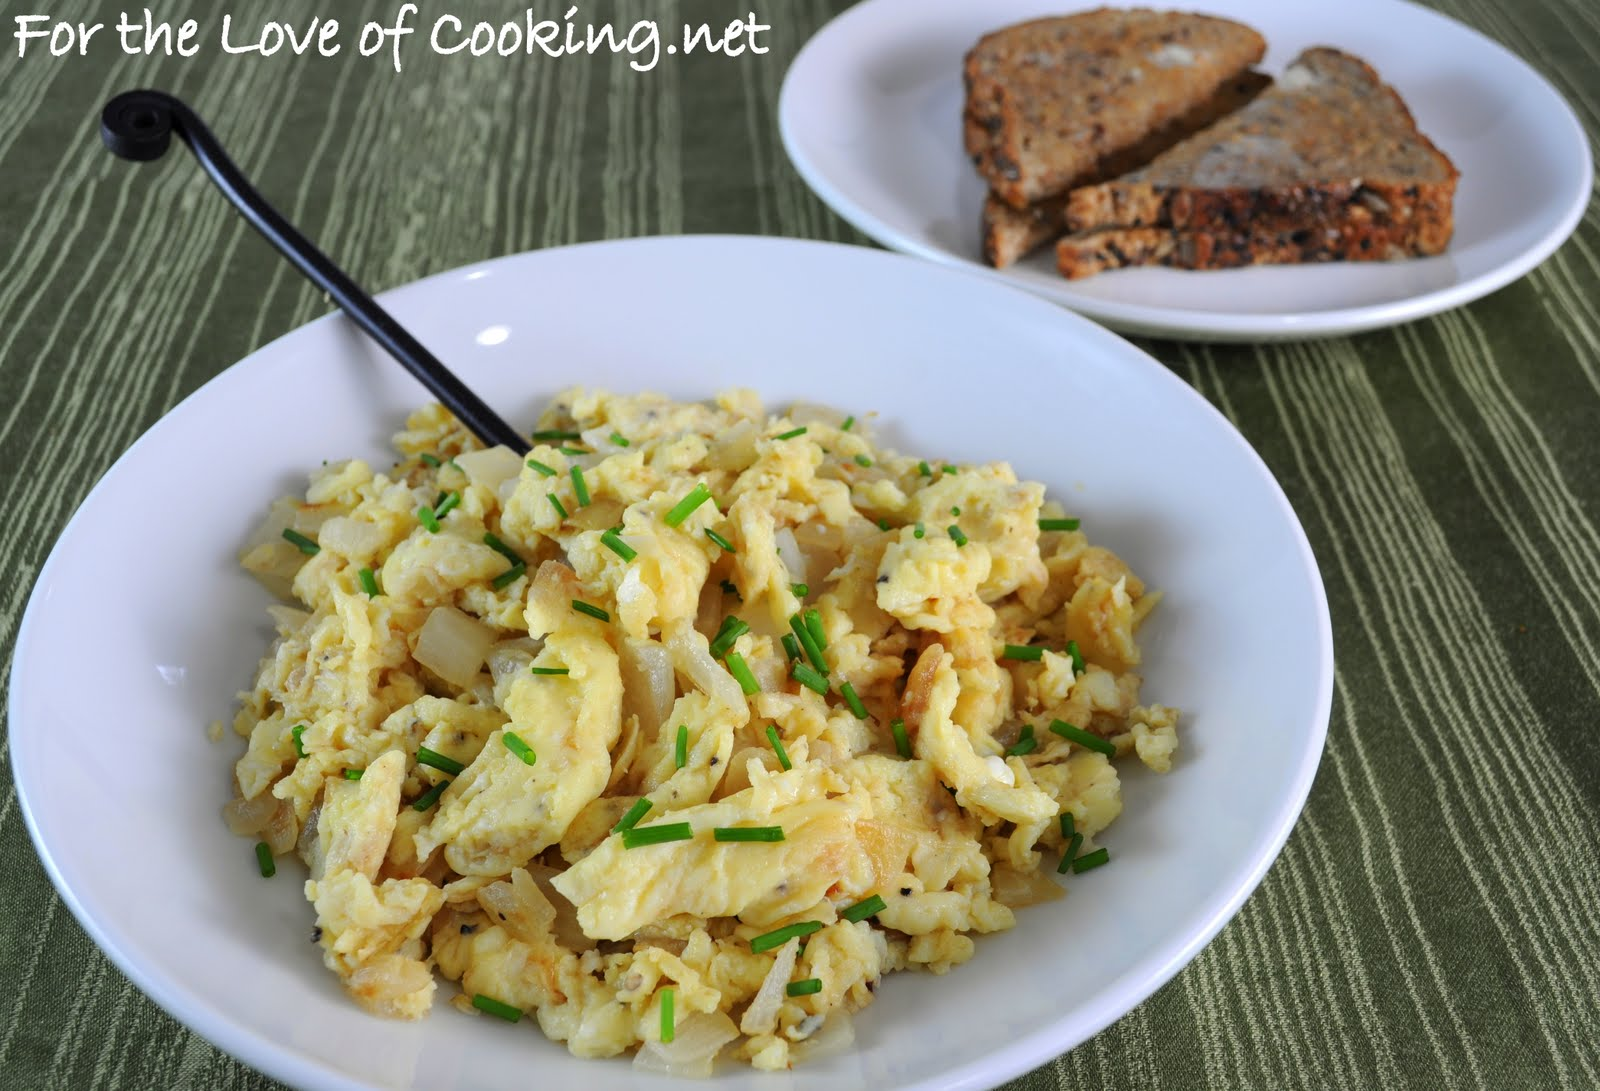 Caramelized Onion Scrambled Eggs | For the Love of Cooking